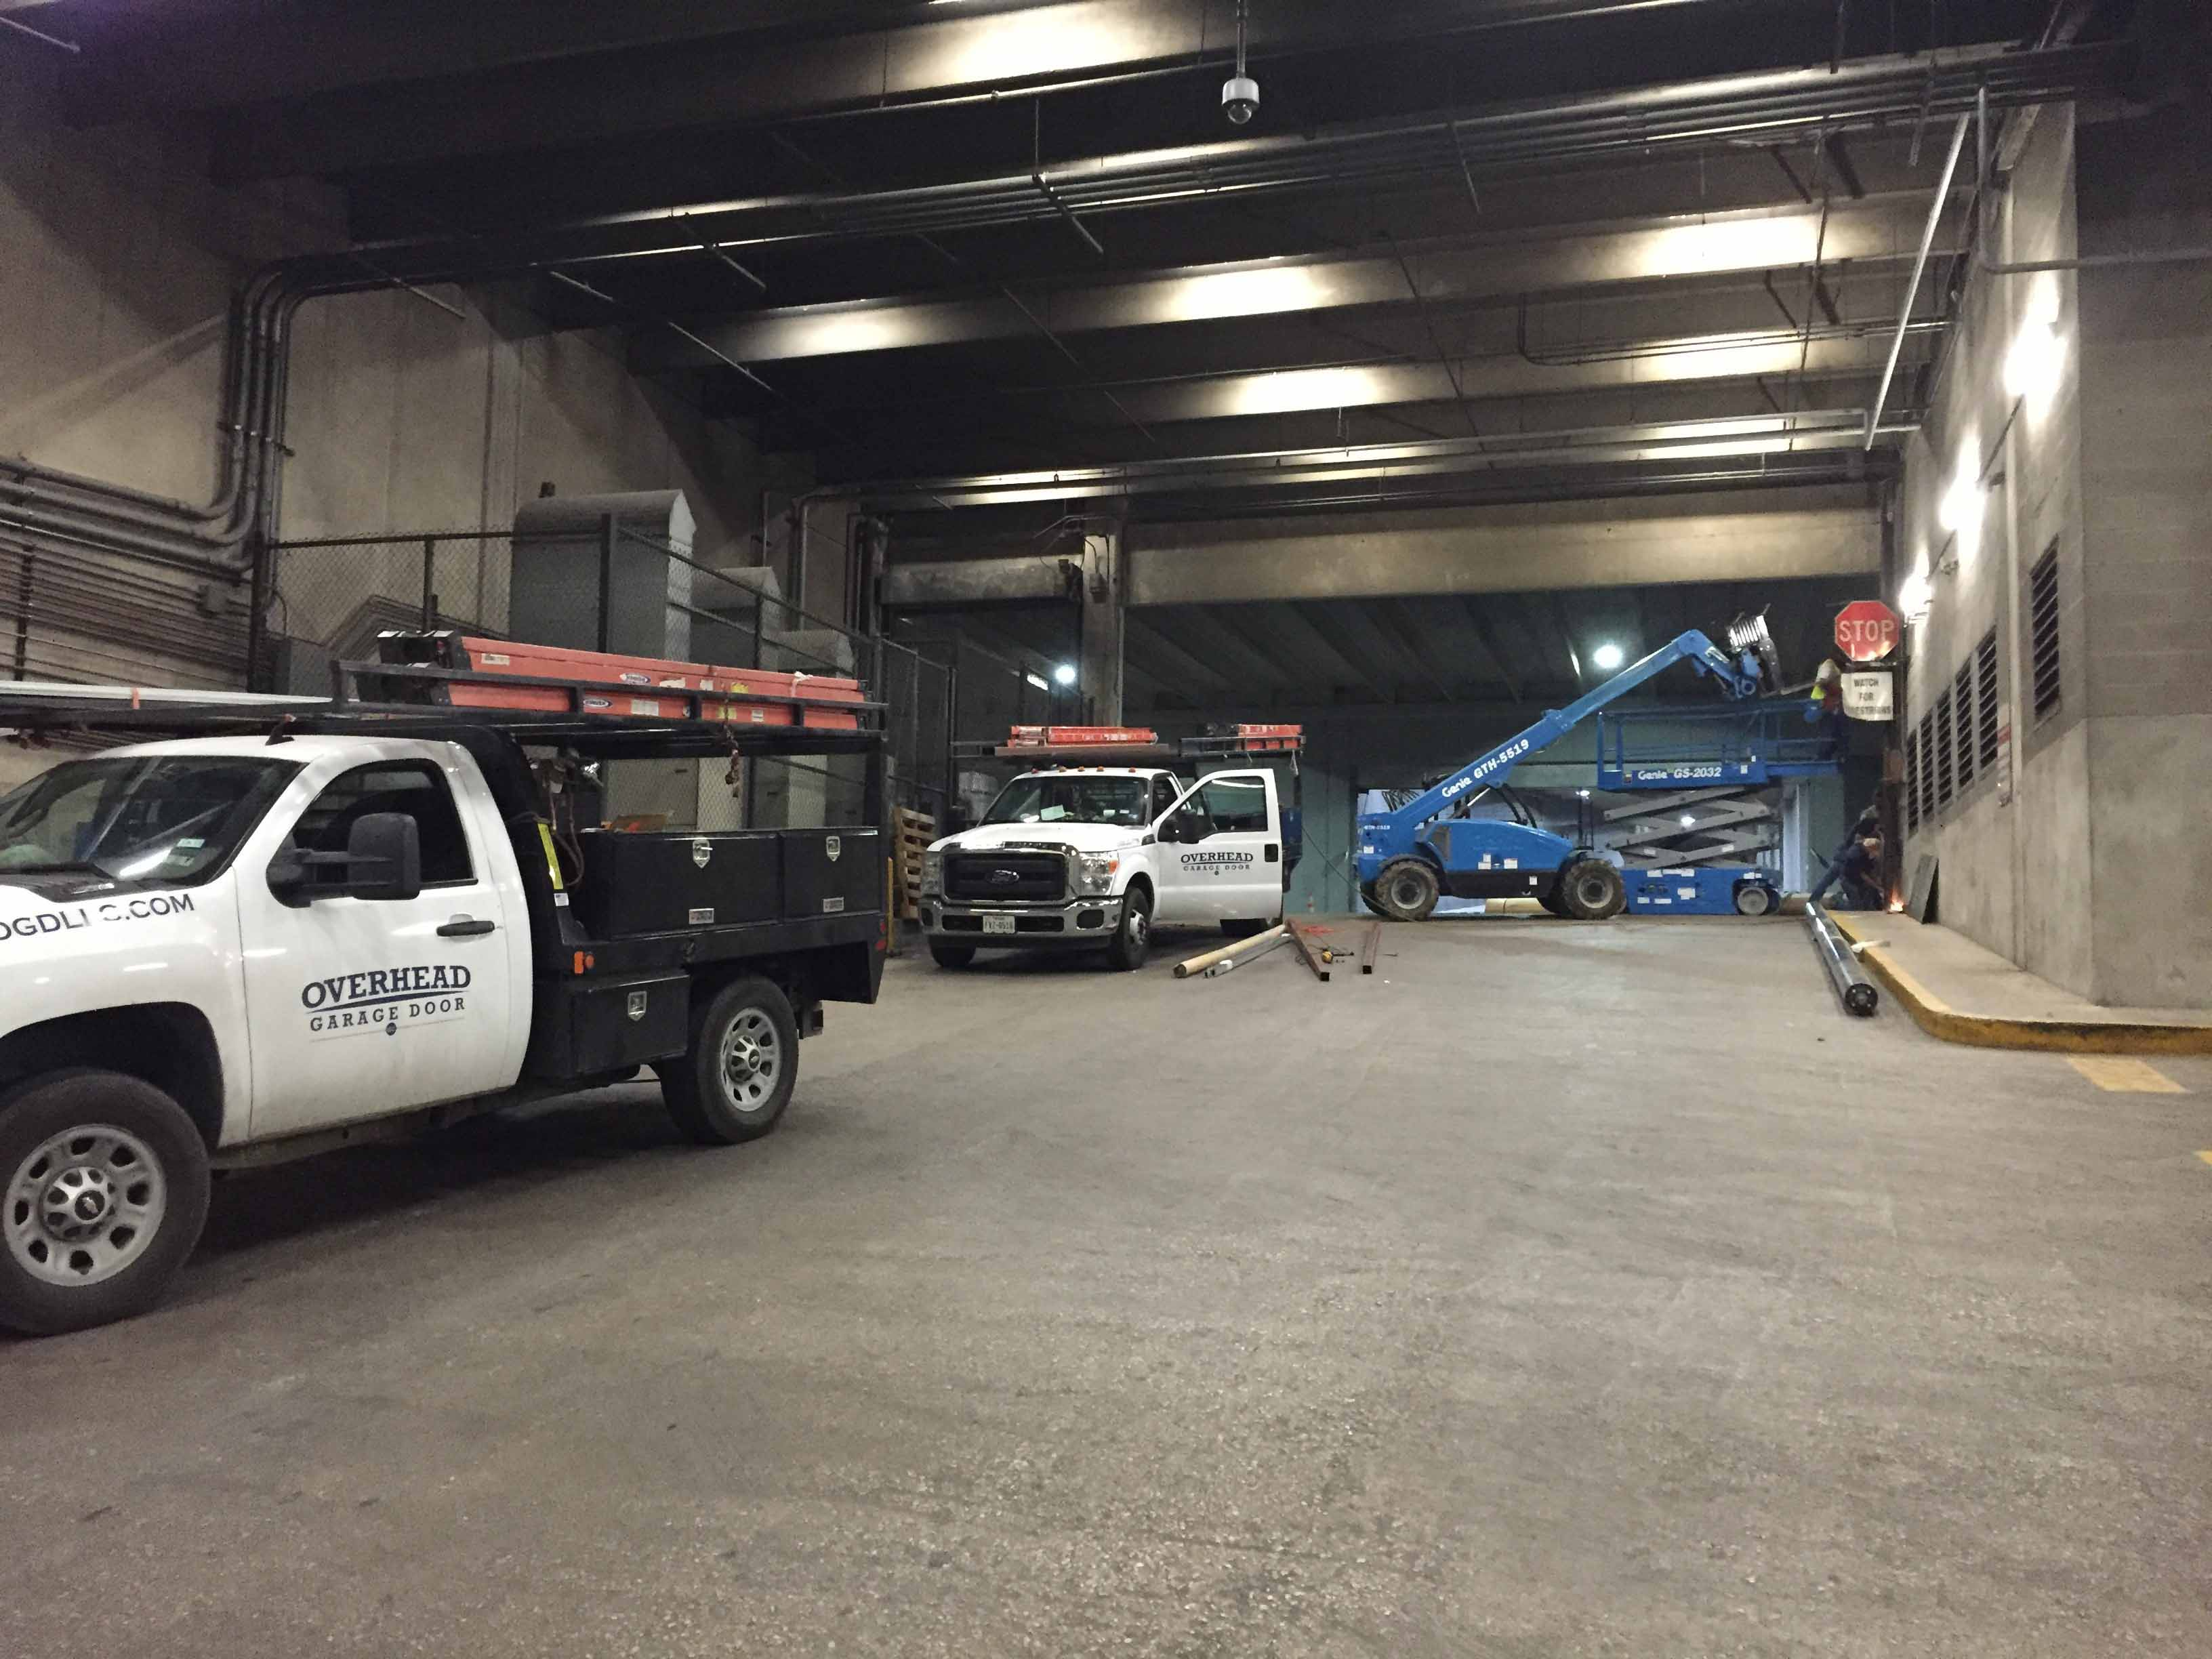 Commercial Garage Door Installation Sundance Square - Fort Worth, TX - Completed 2015